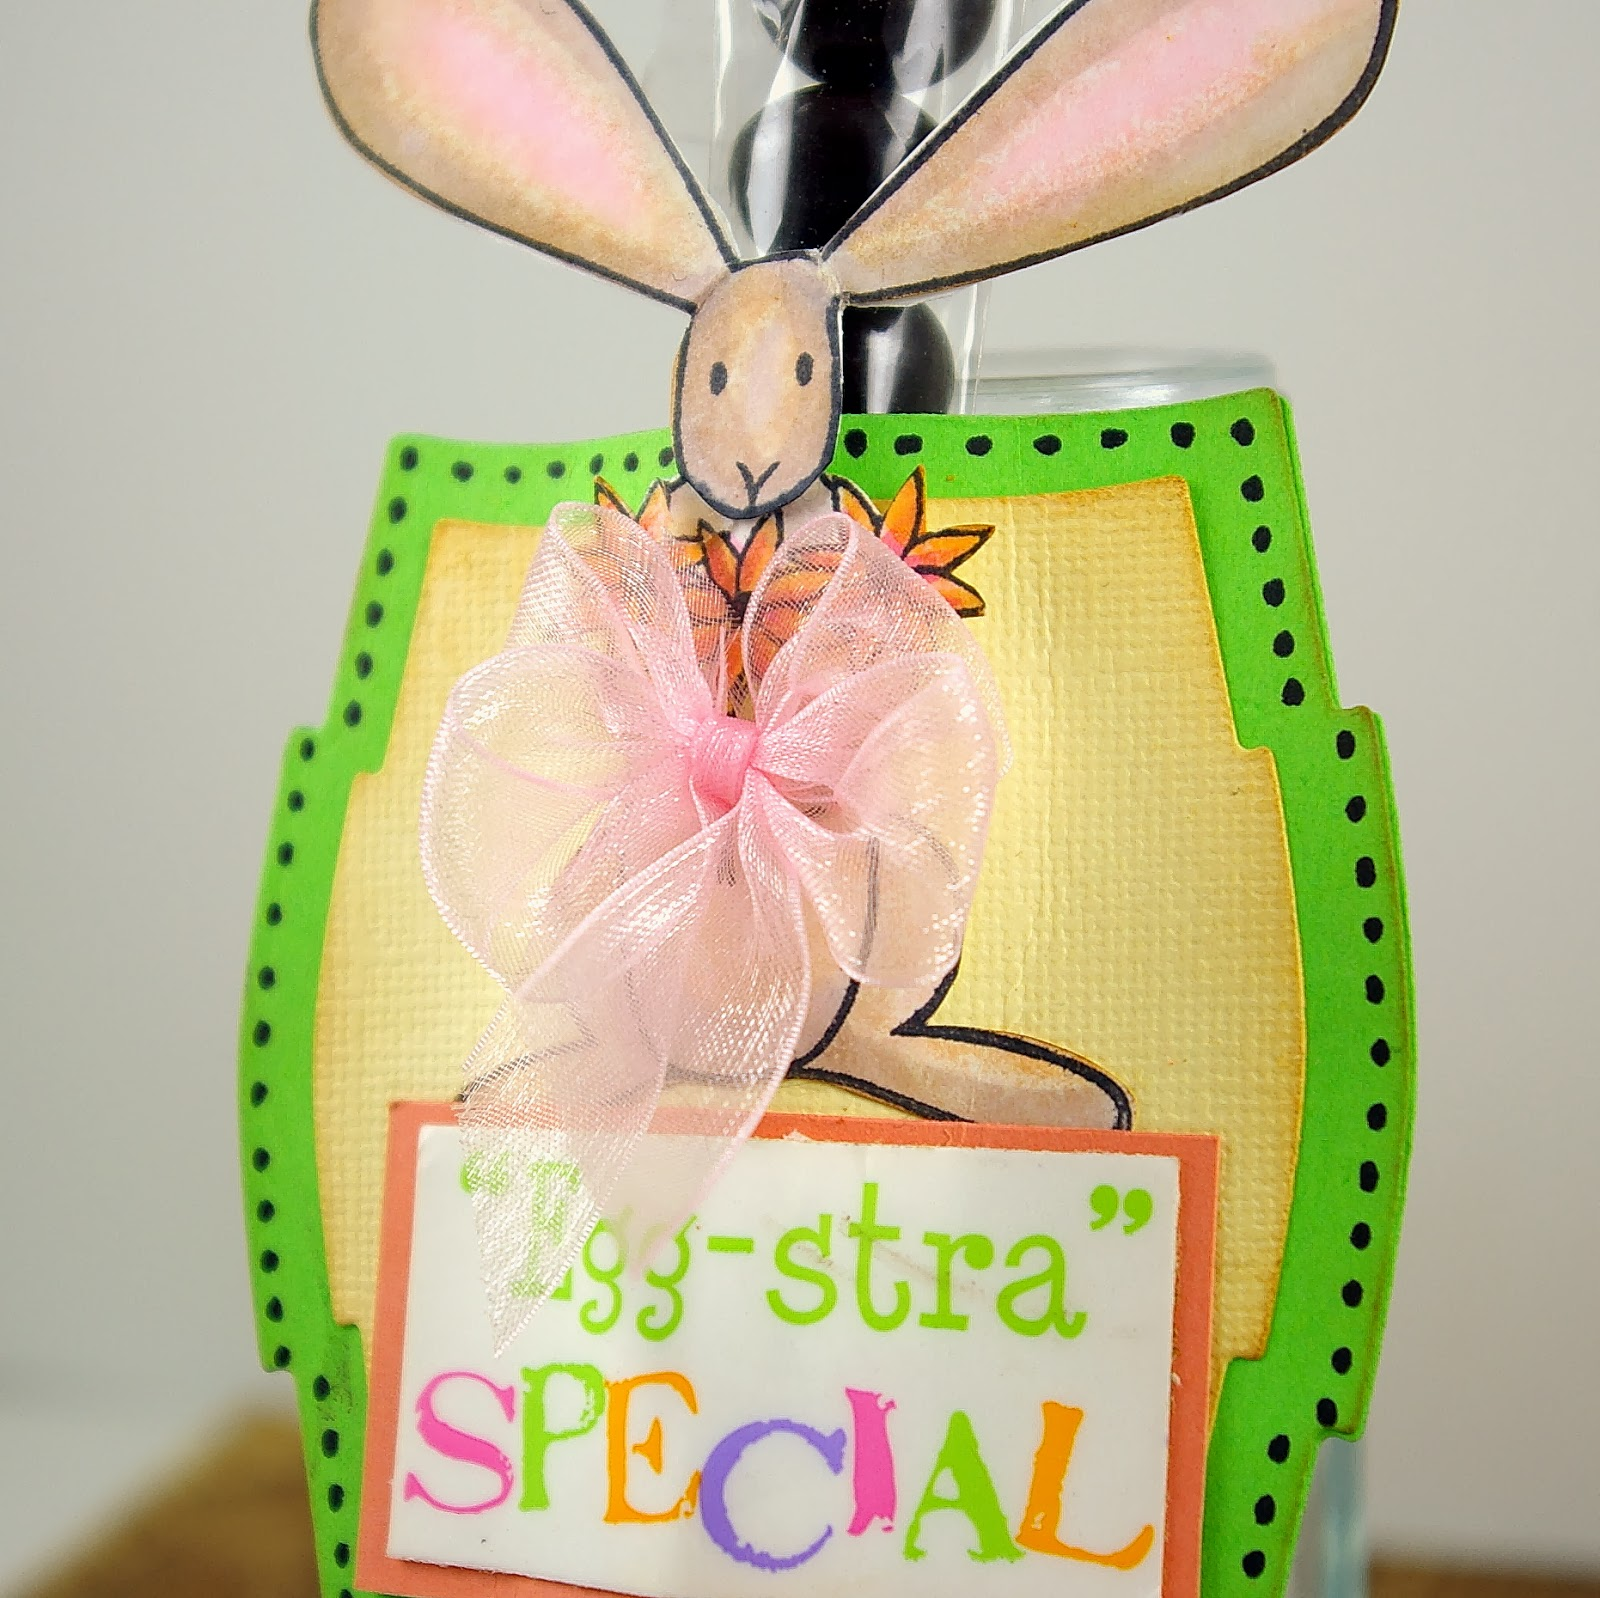 SRM Stickers Blog - Egg-stra Special Easter Treat by Michelle - #clear bag #stickers #easter #treat